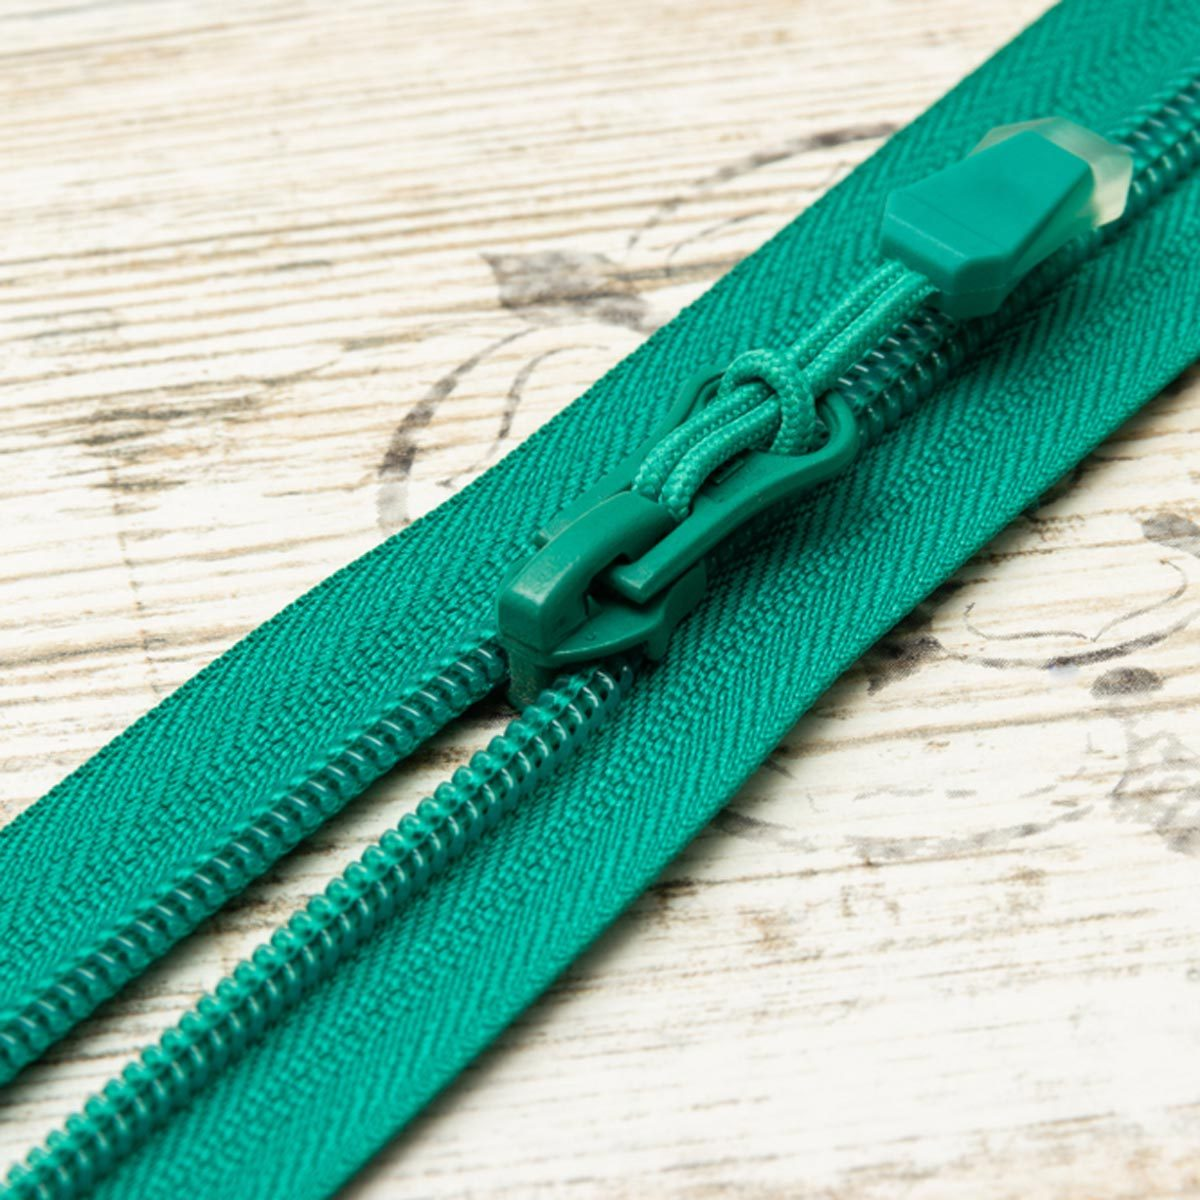 How to Shorten a Continuous Coil Zipper